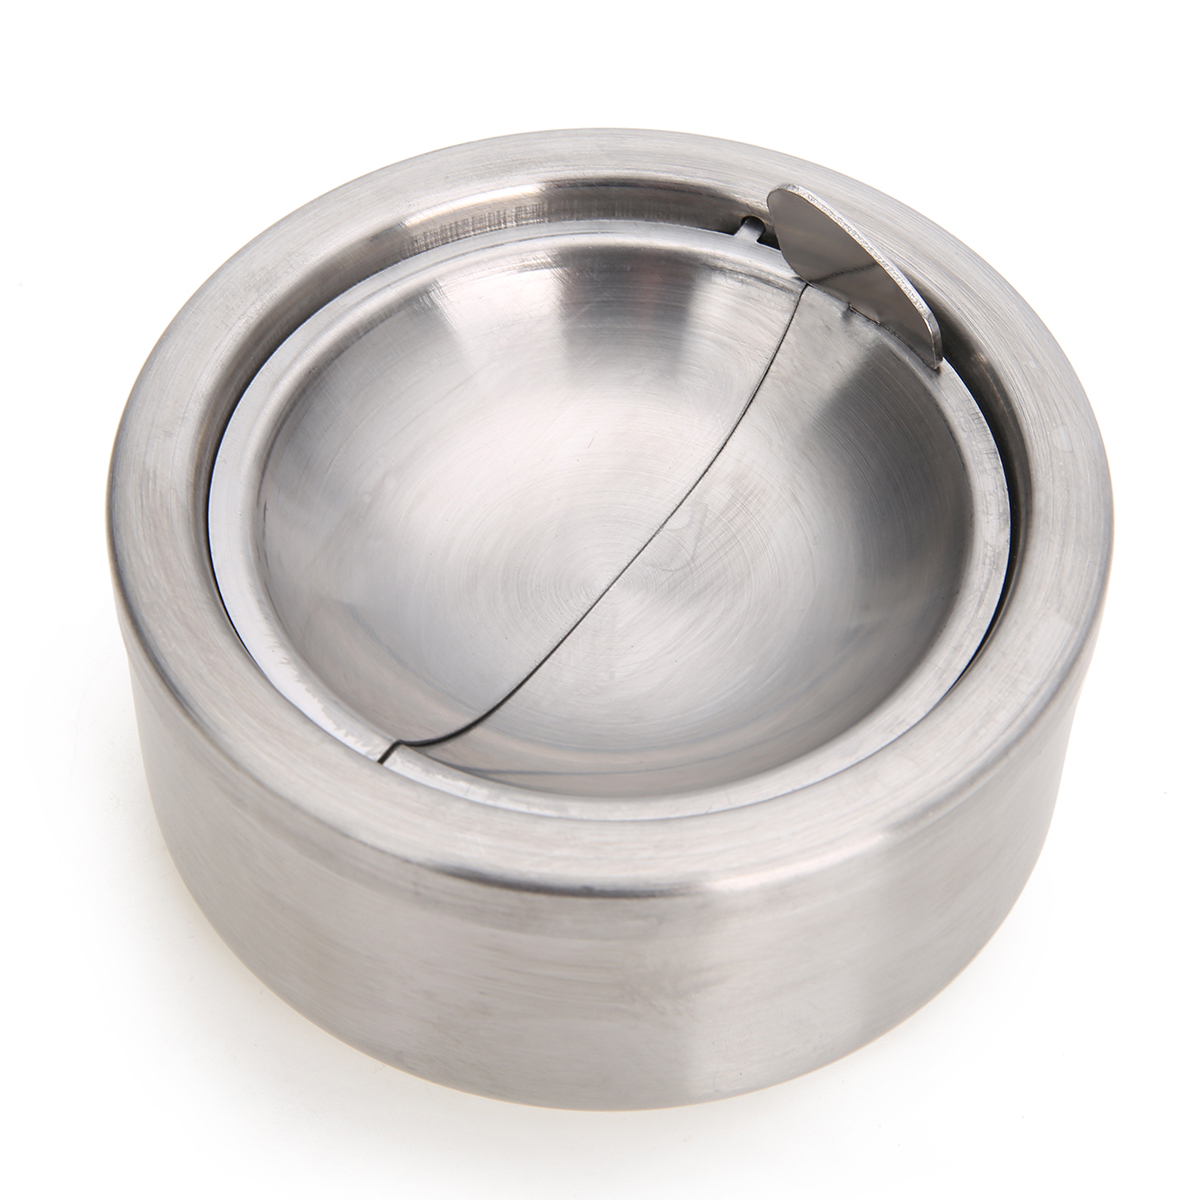 1pc Portable Home Metal Ashtray Stainless Steel Cigarette Ash Accessories For Men Smoking Tools MAYITR